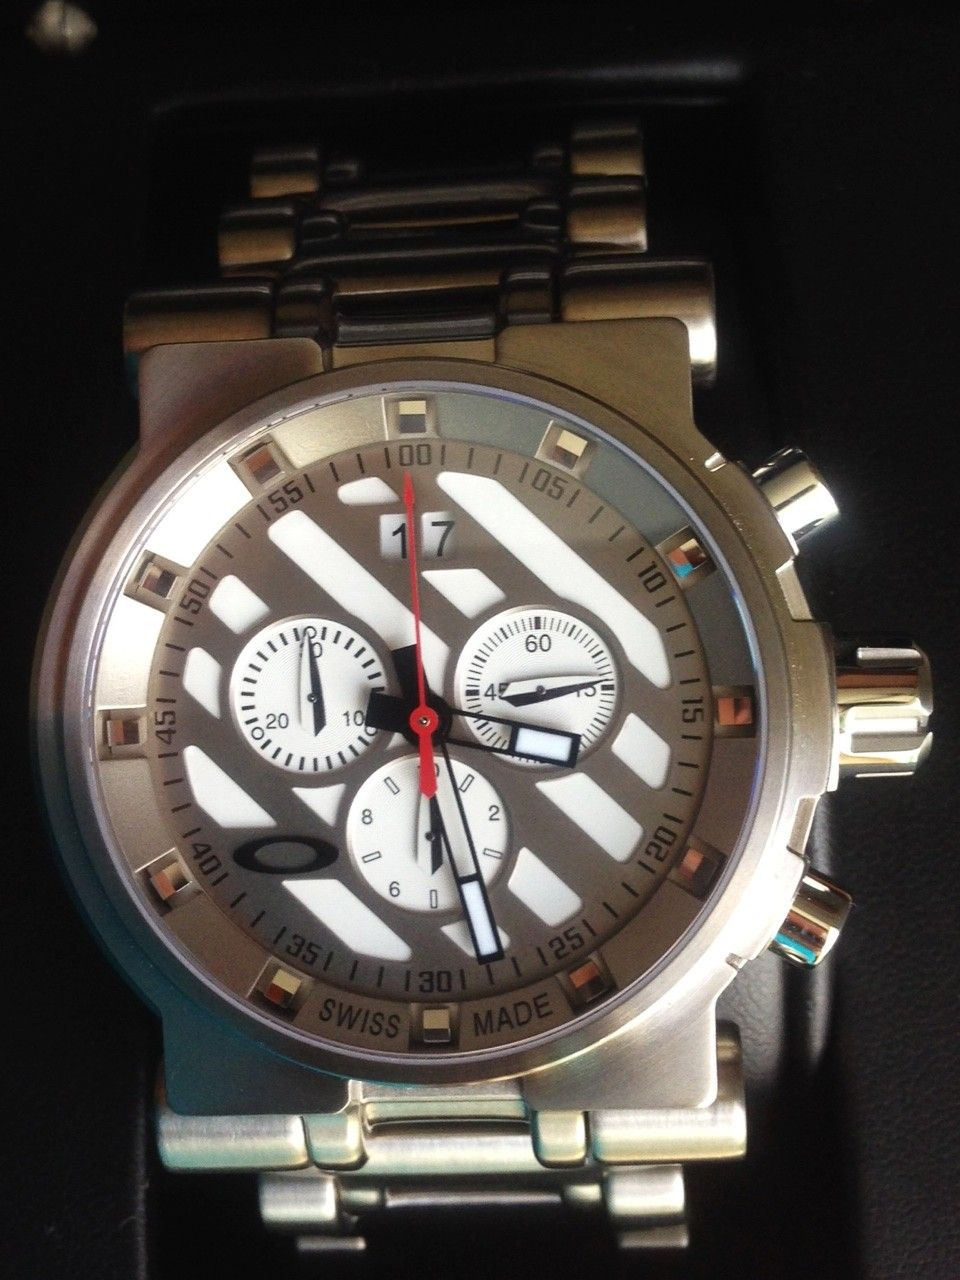 NEW IN BOX Hollow Point Titanium Watch White Dial 10-046 REDUCE PRICE 1,250 or Best Offer - 7.JPG